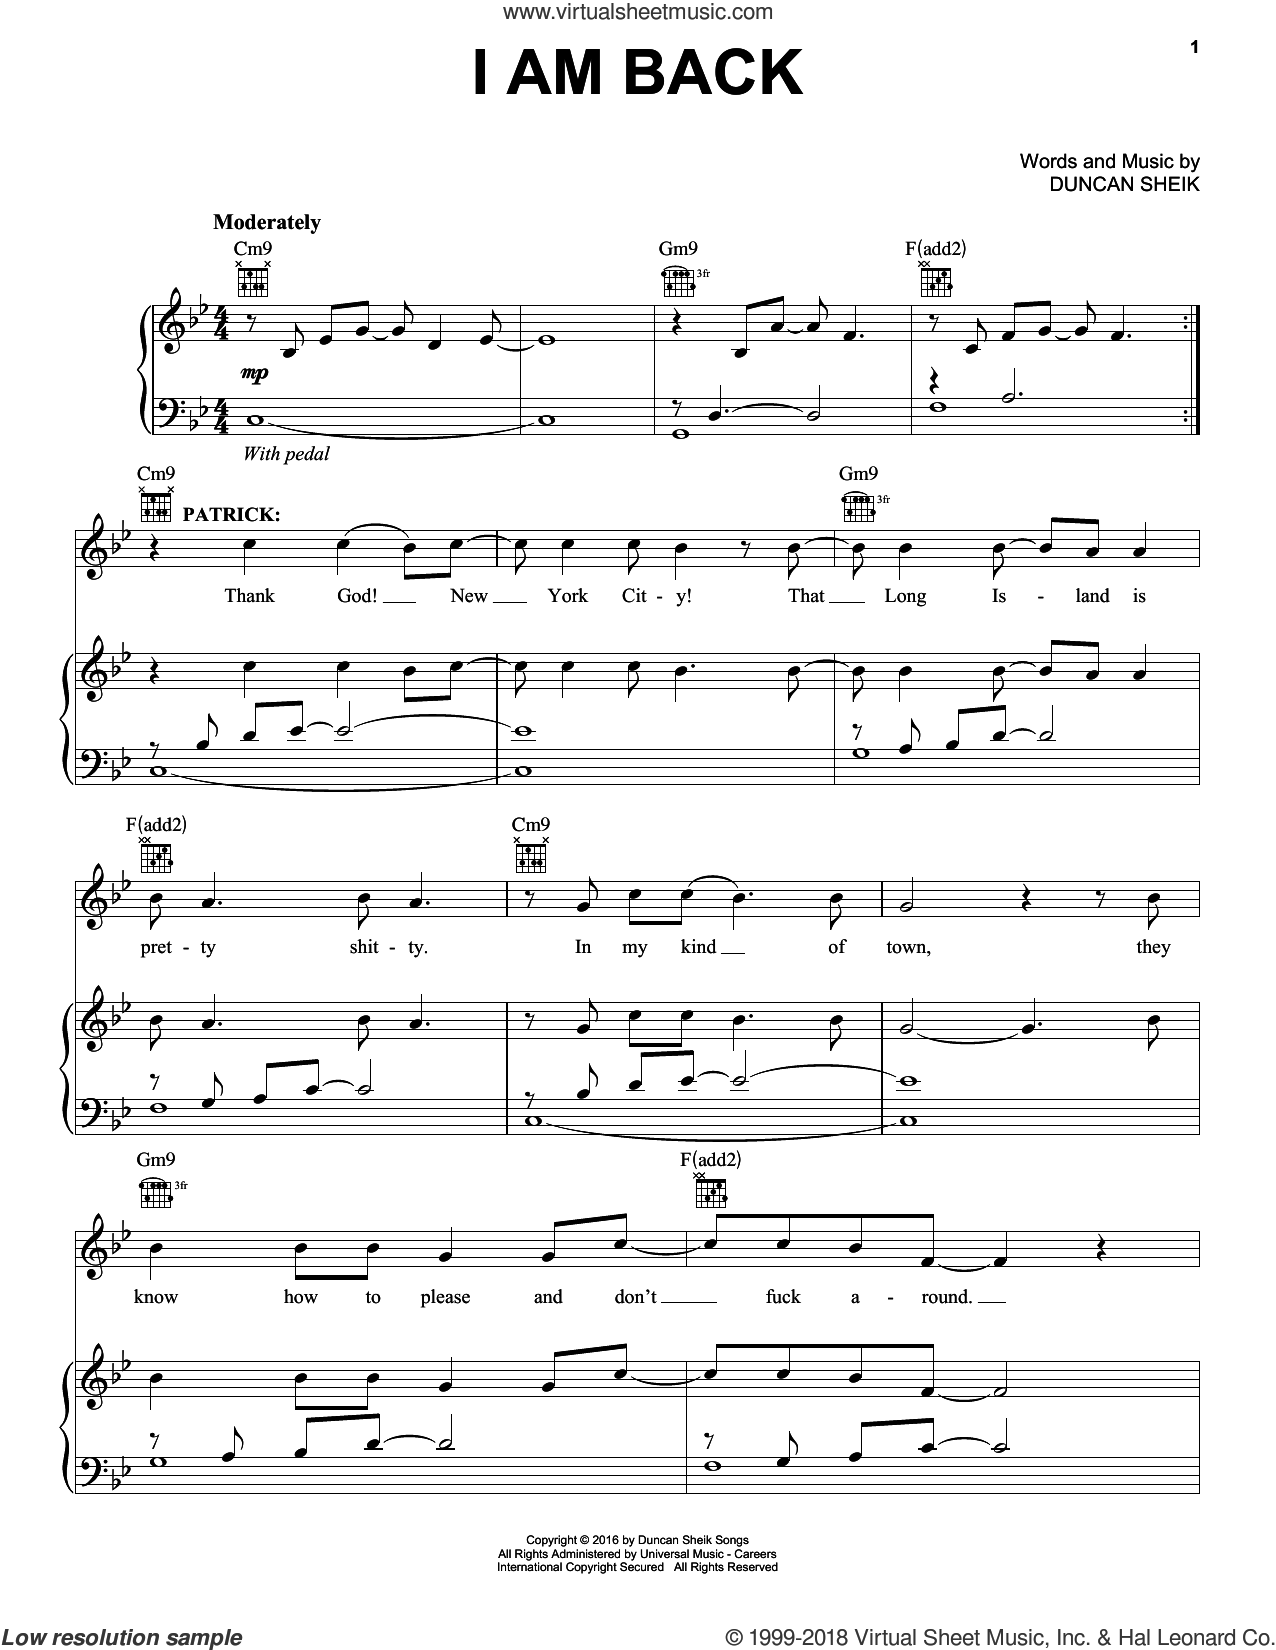 I Am Back sheet music for voice, piano or guitar by Duncan Sheik, intermediate skill level